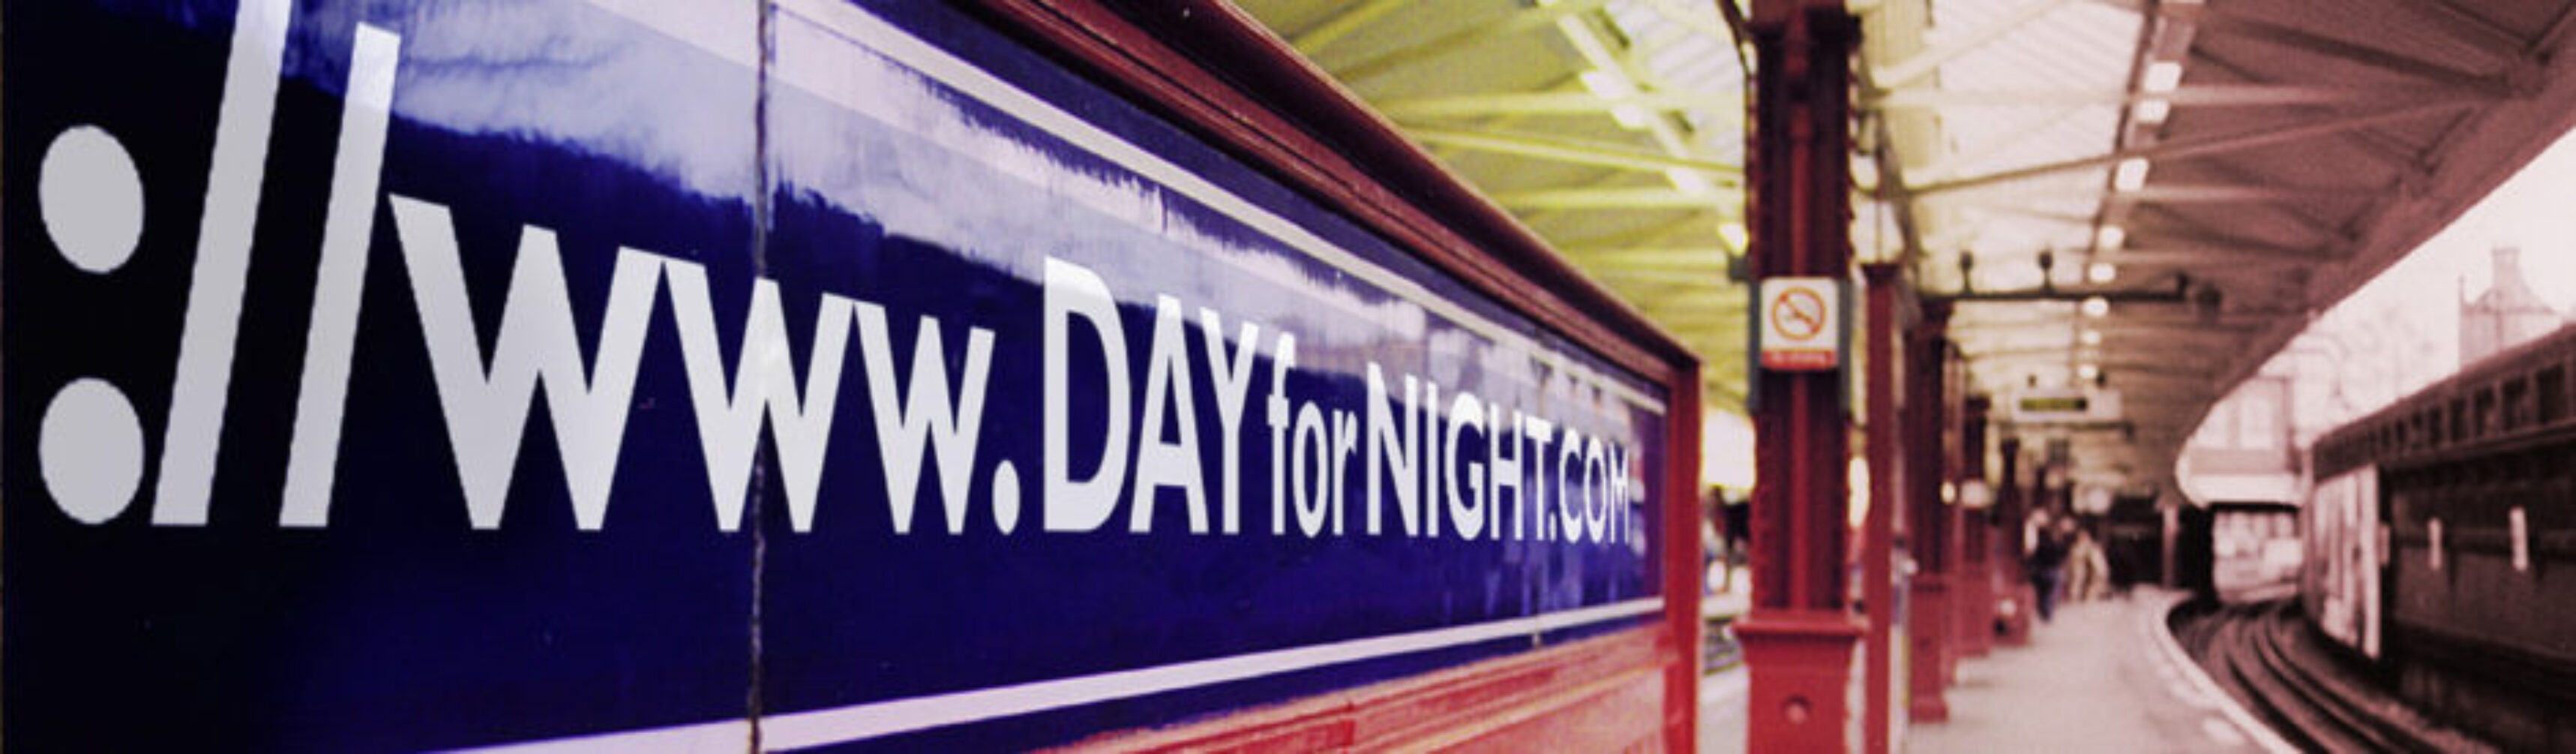 Day-019_01-Day-For-Night-Enter-Active